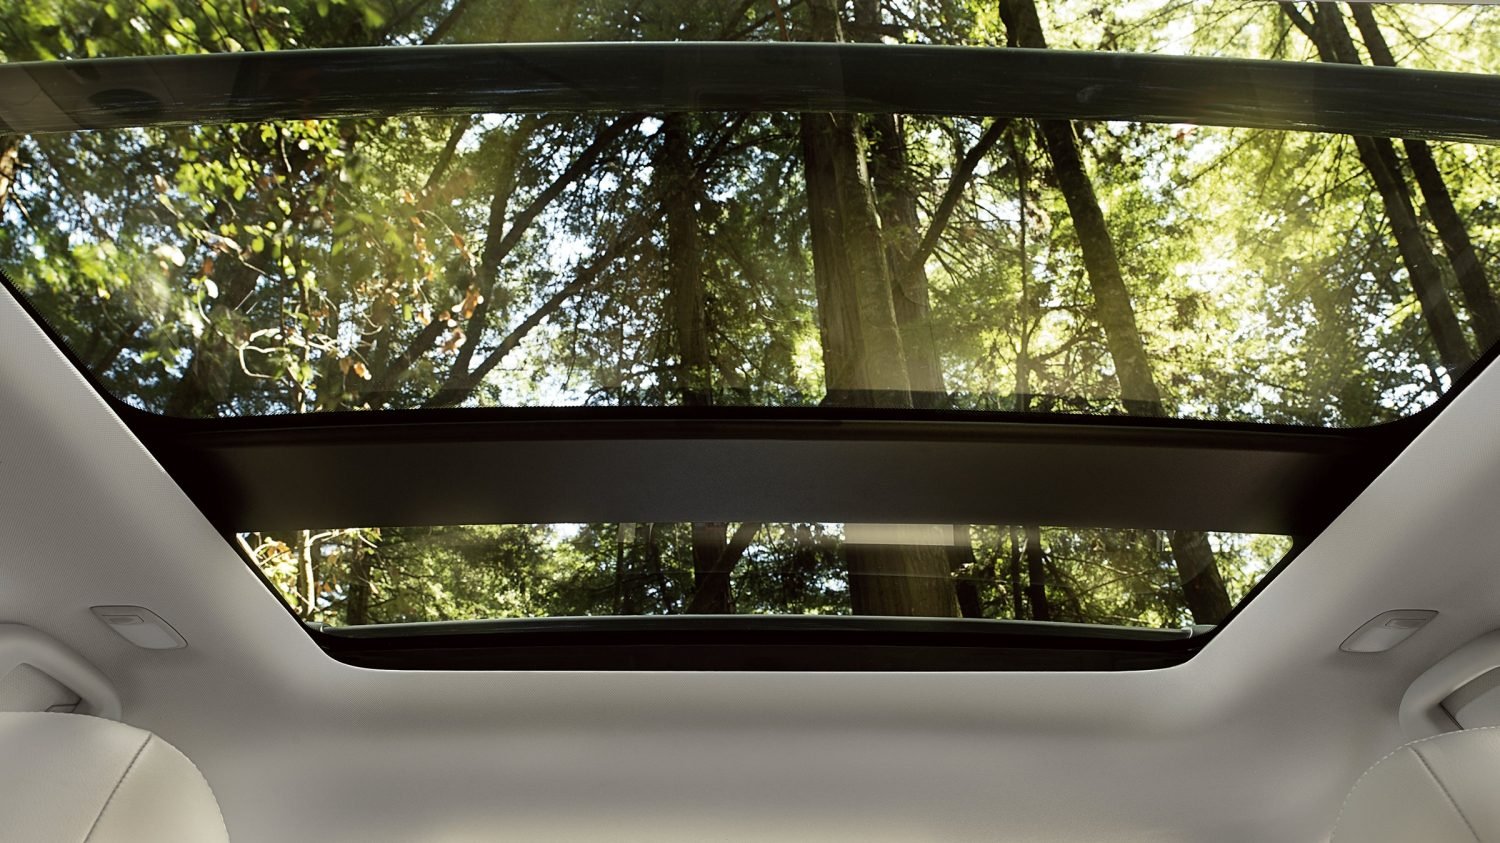 Nissan Pathfinder dual panel moonroof